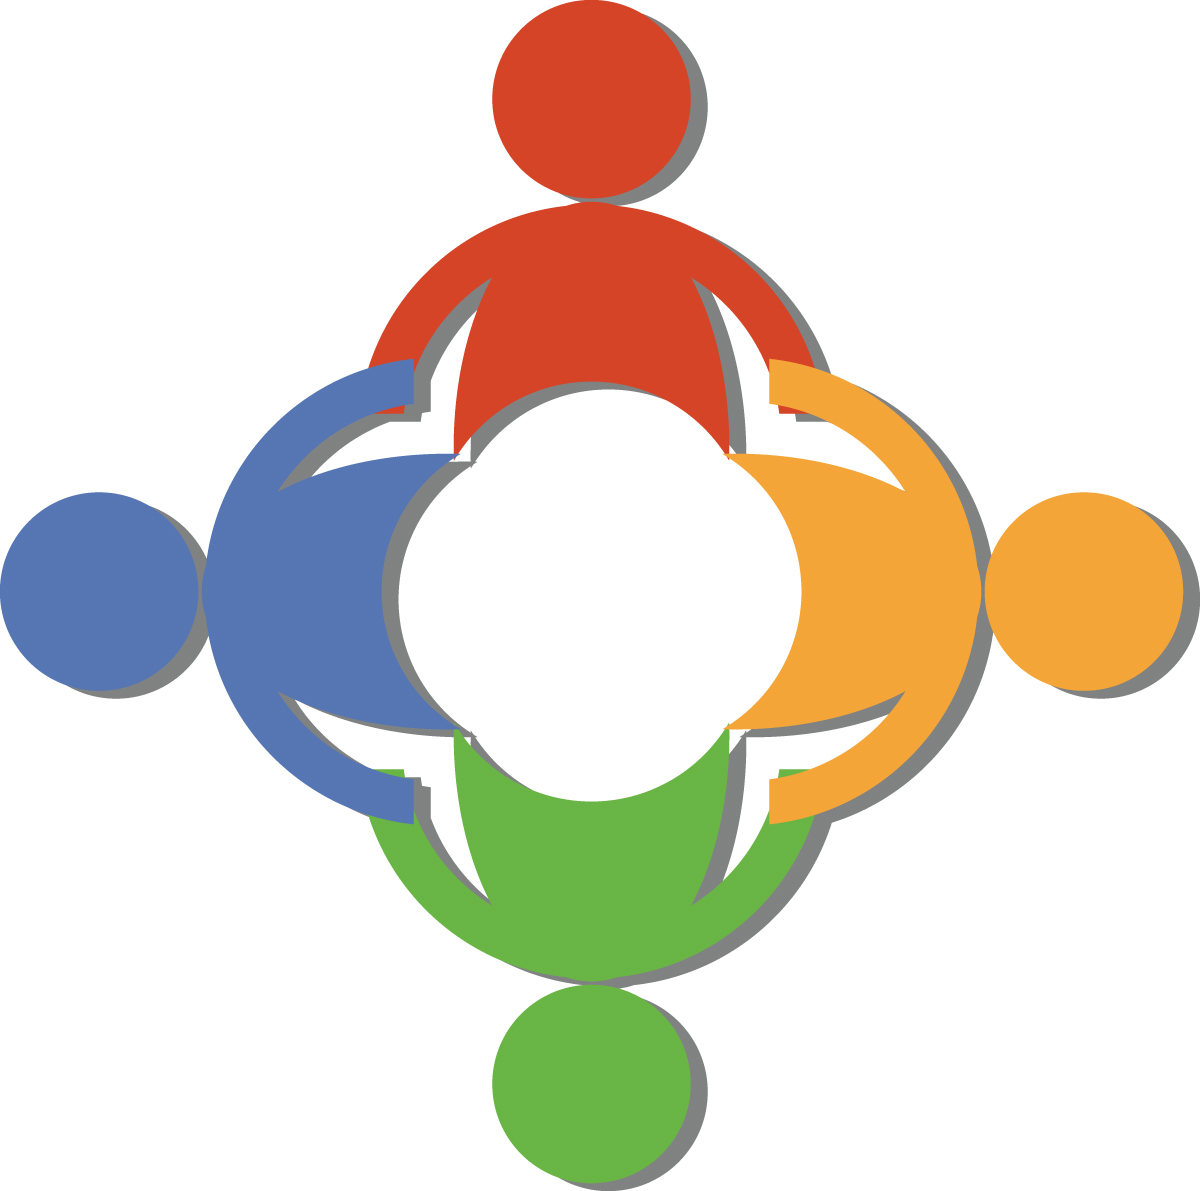 7 Free Teamwork Clip Art Of A Circle Of Diverse People Holding Hands